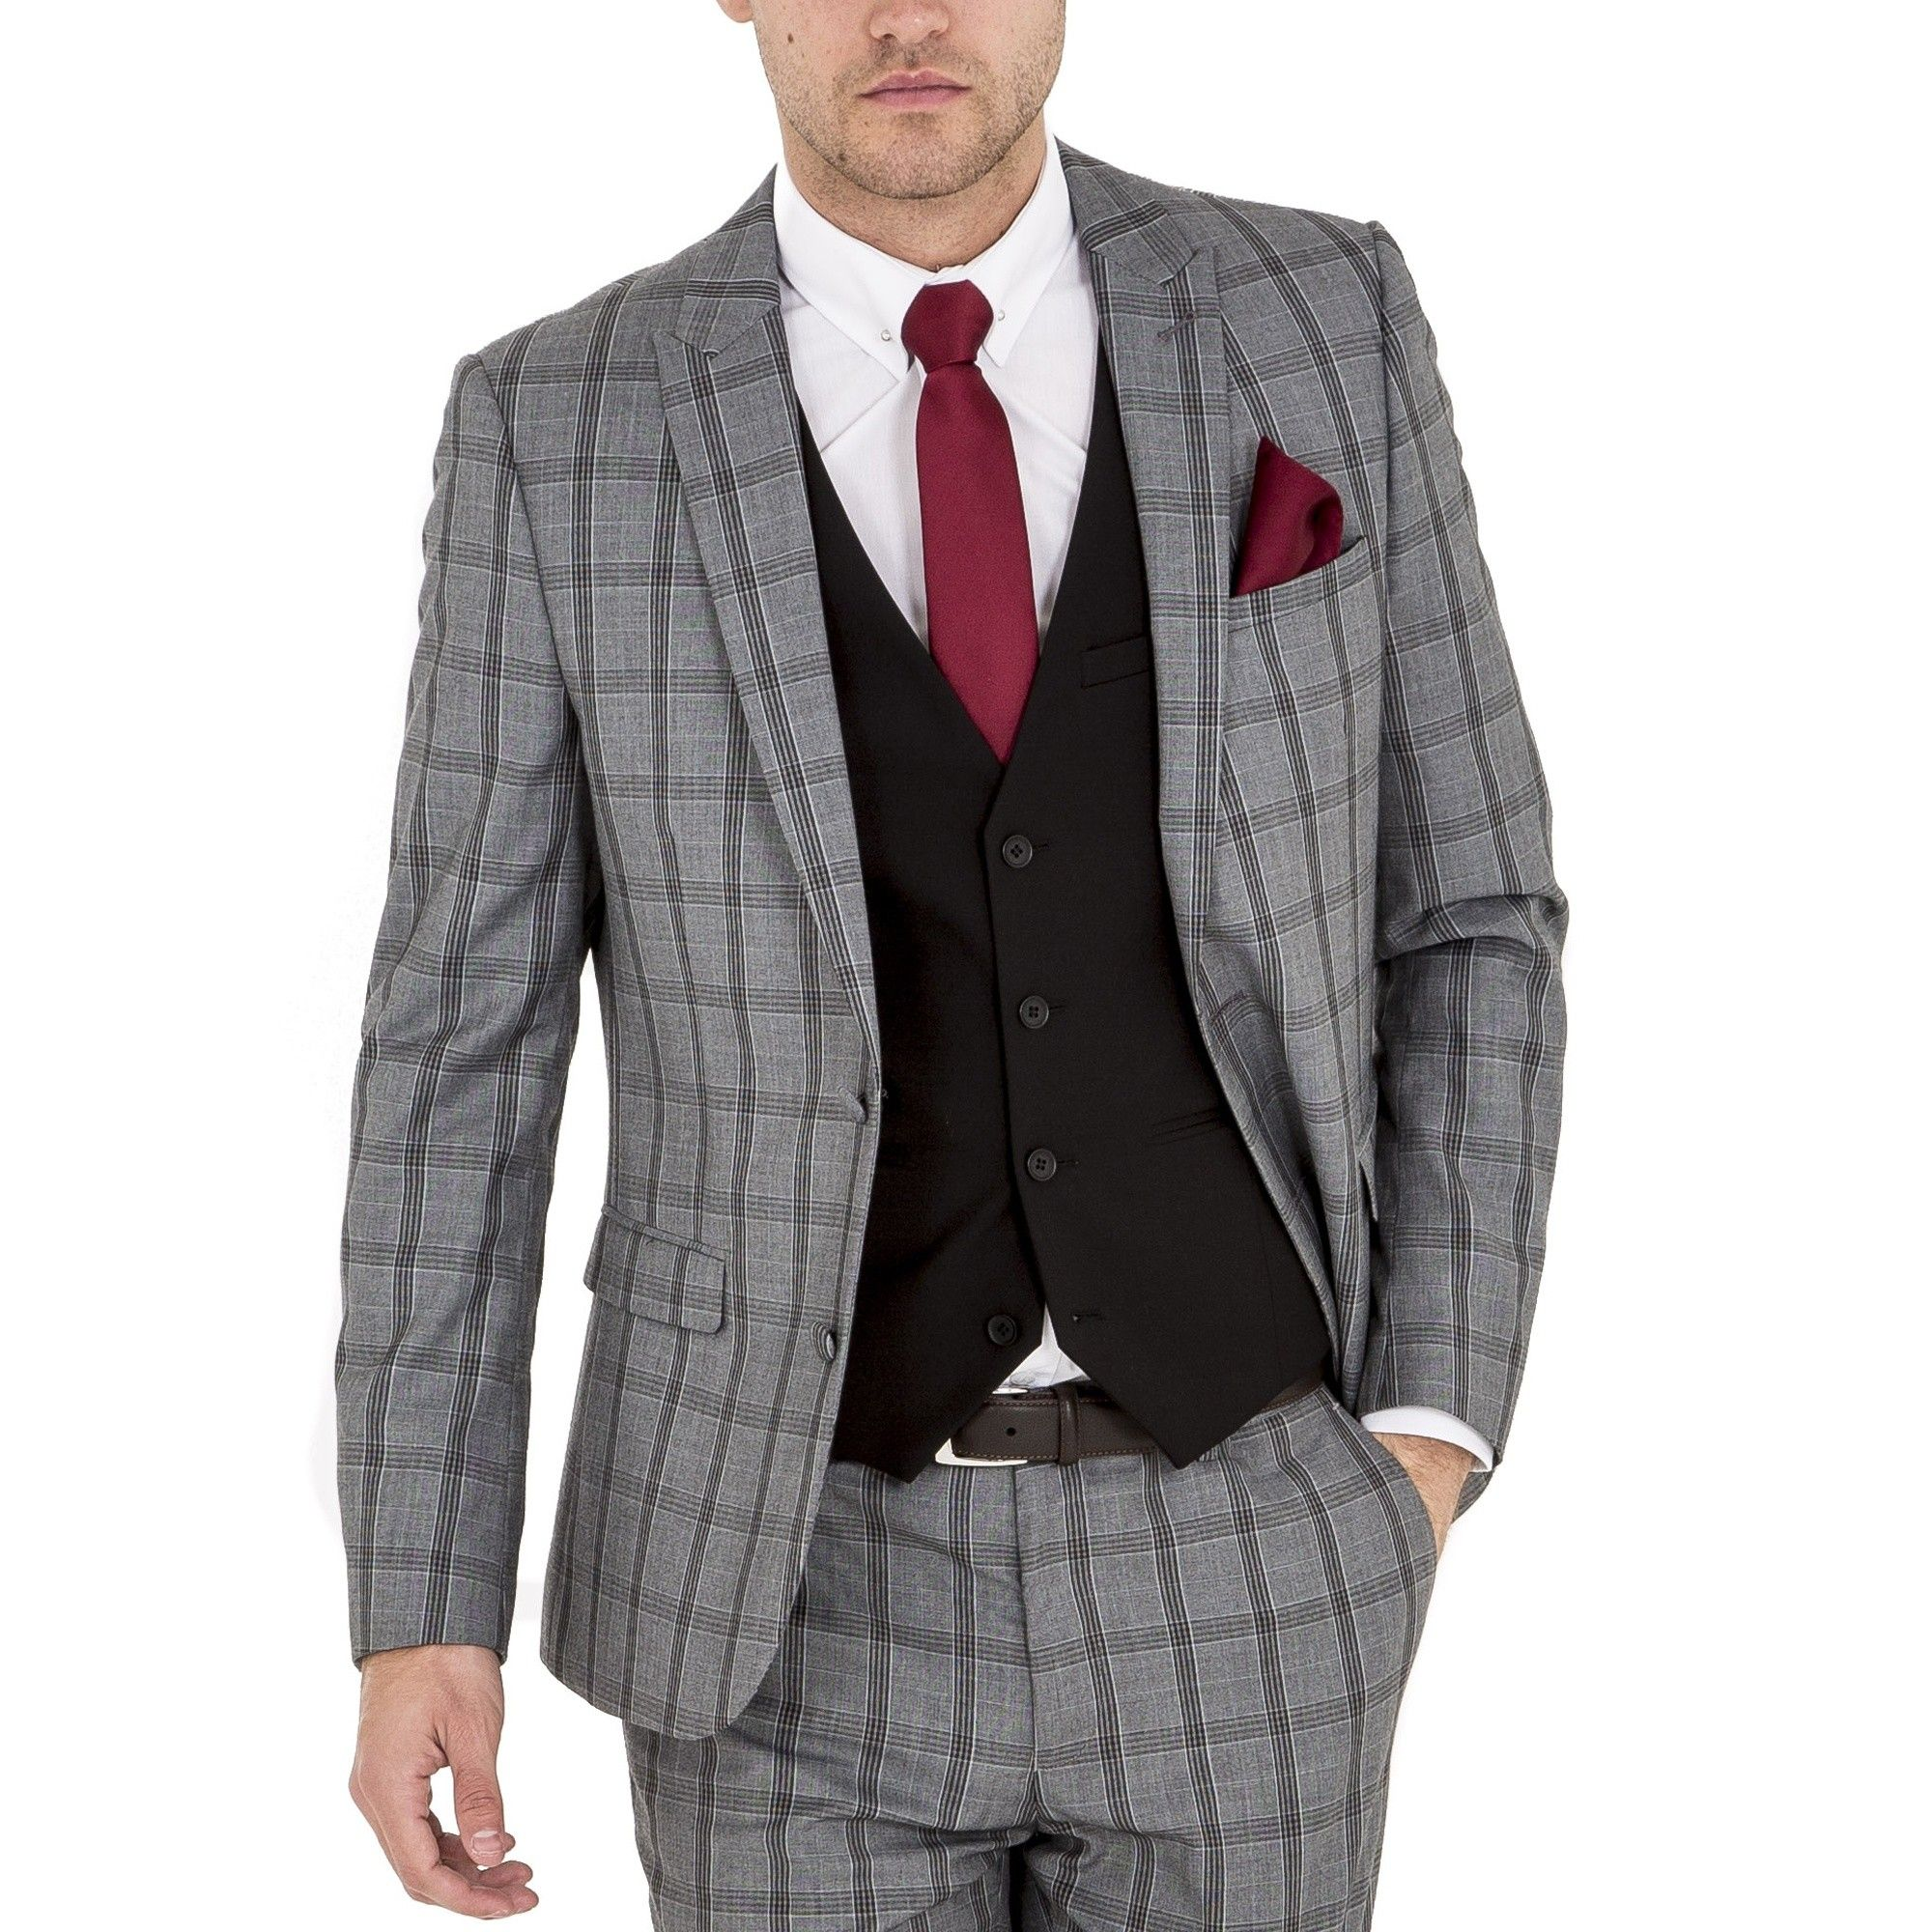 HARRY BROWN Skinny Fit Grey Check Three Piece Suit - Three Piece ...